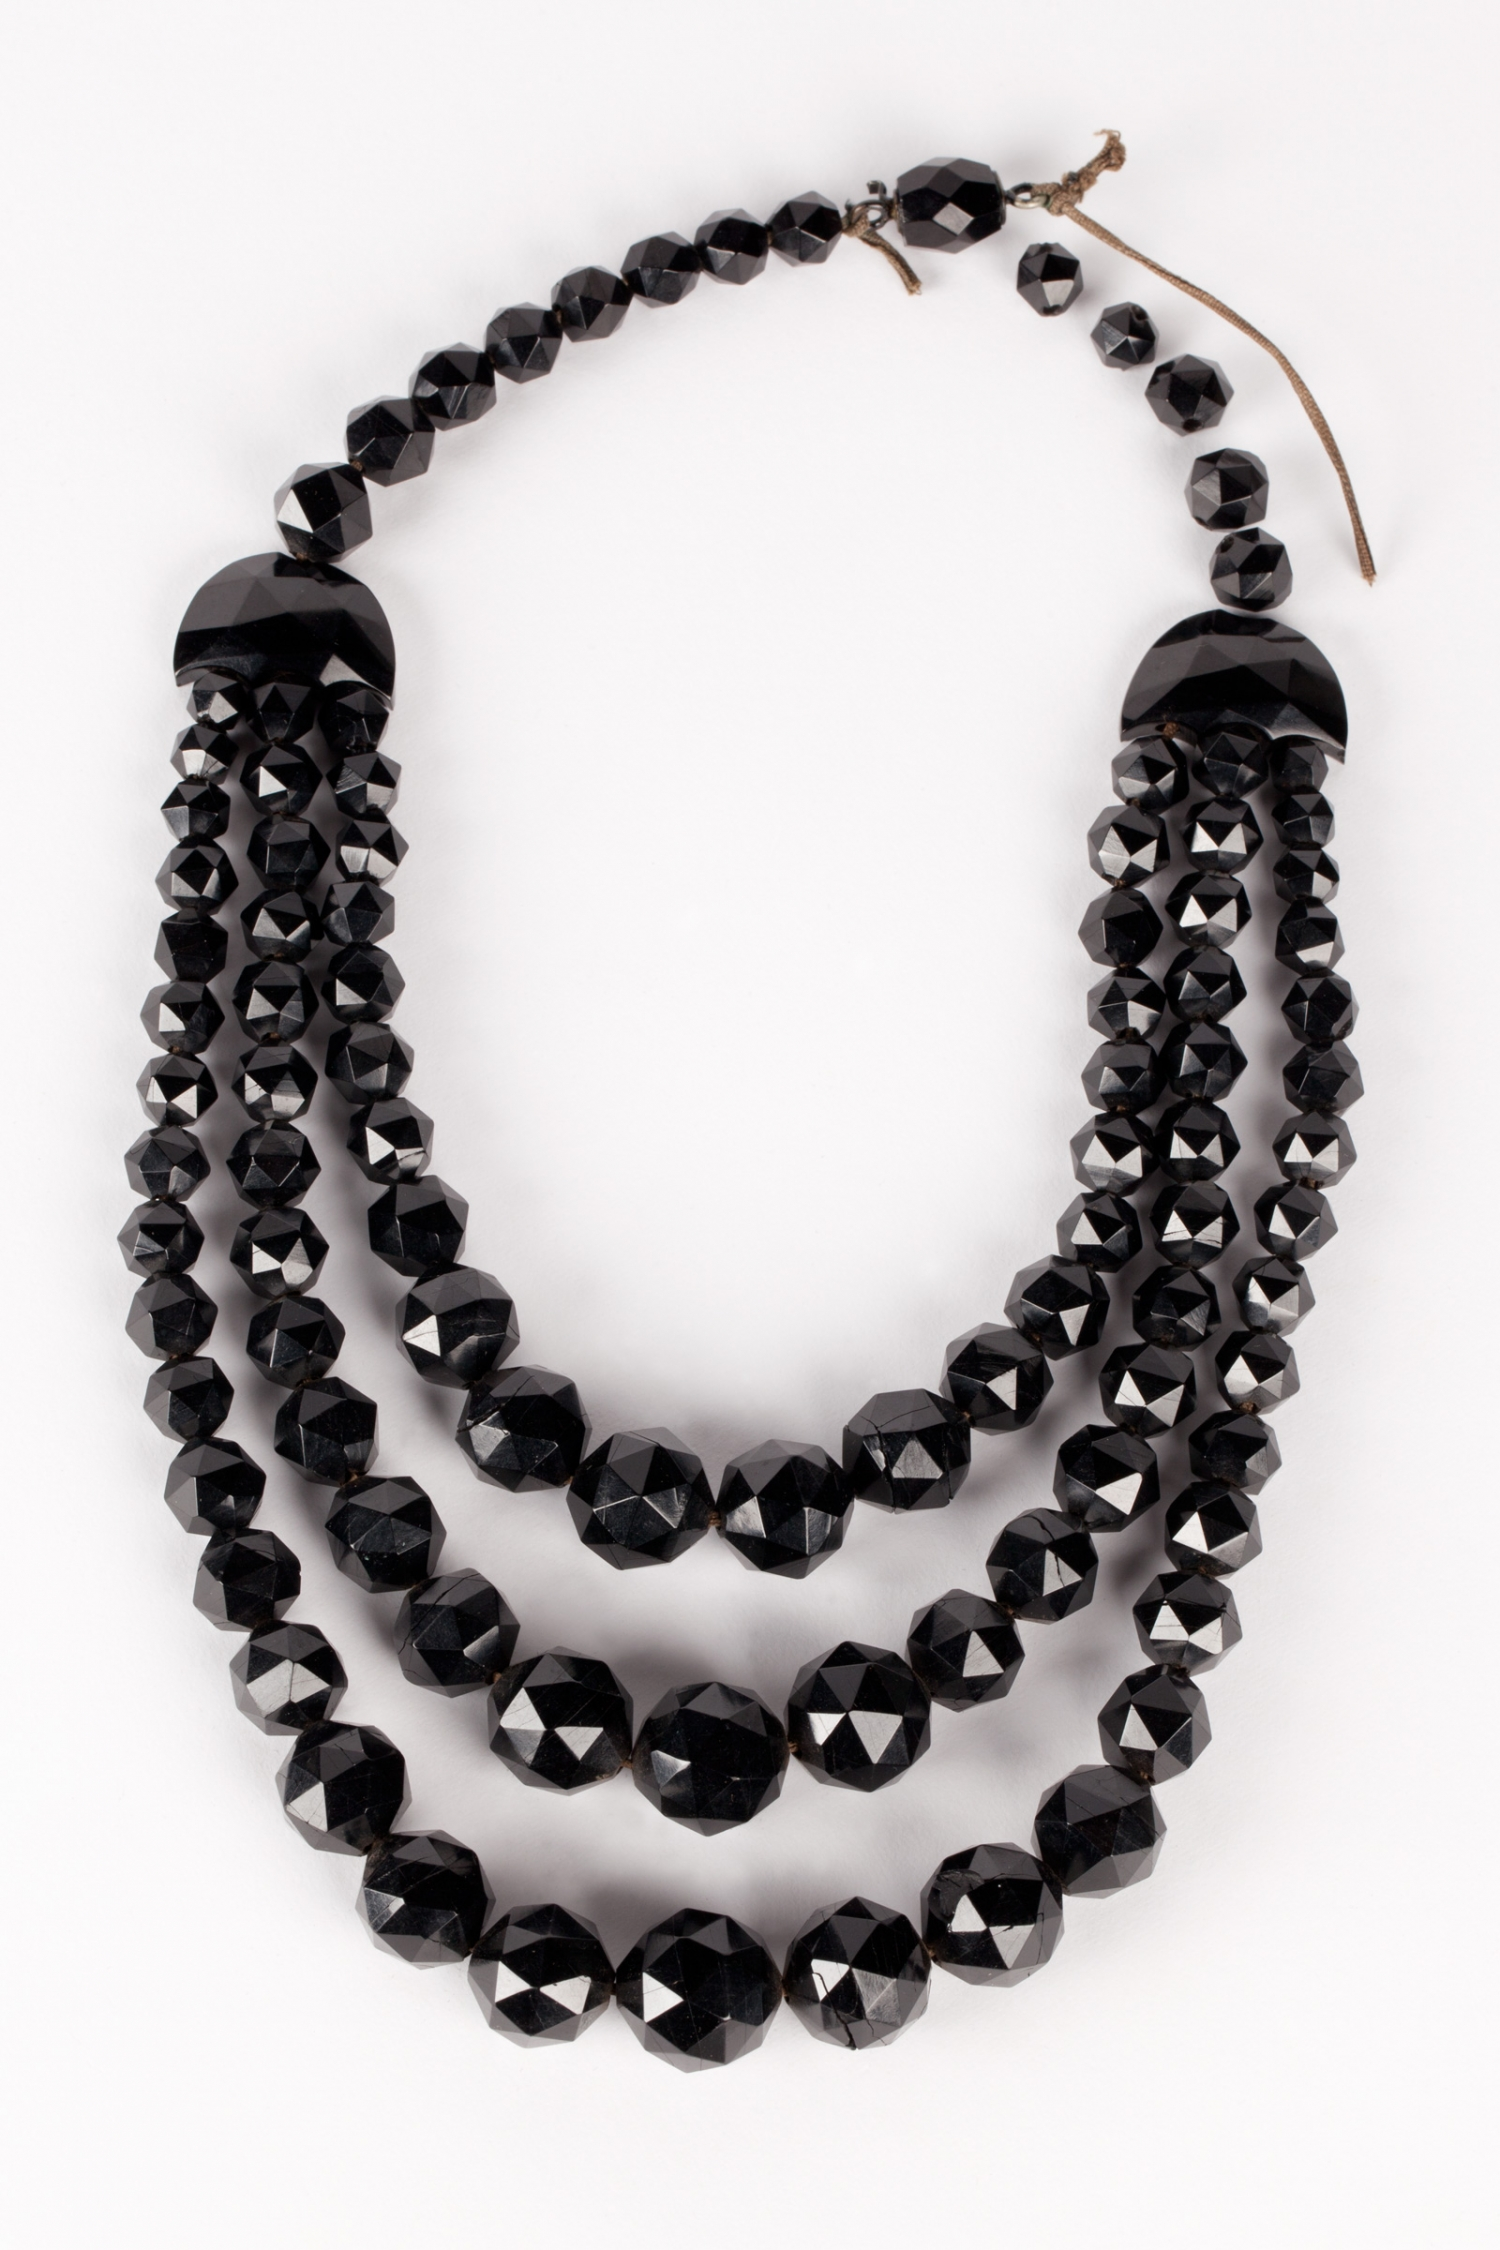 A jet necklace which consists of a single strand of faceted jet beads from which are hung three strands of graduated beads attached through faceted half-moon shaped beads.